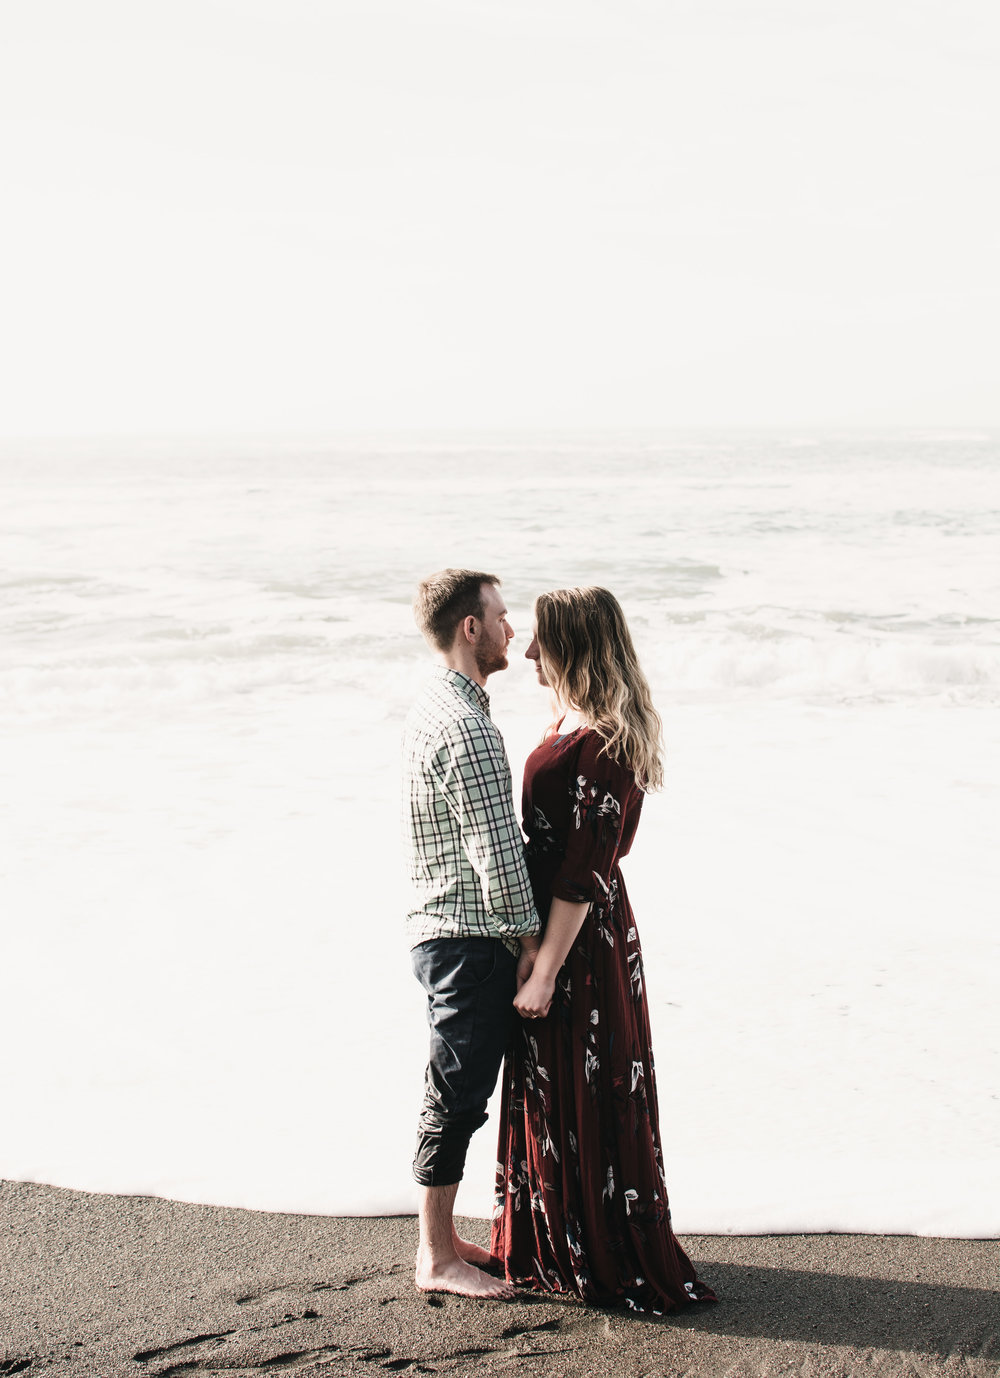 Black sands beach engagement